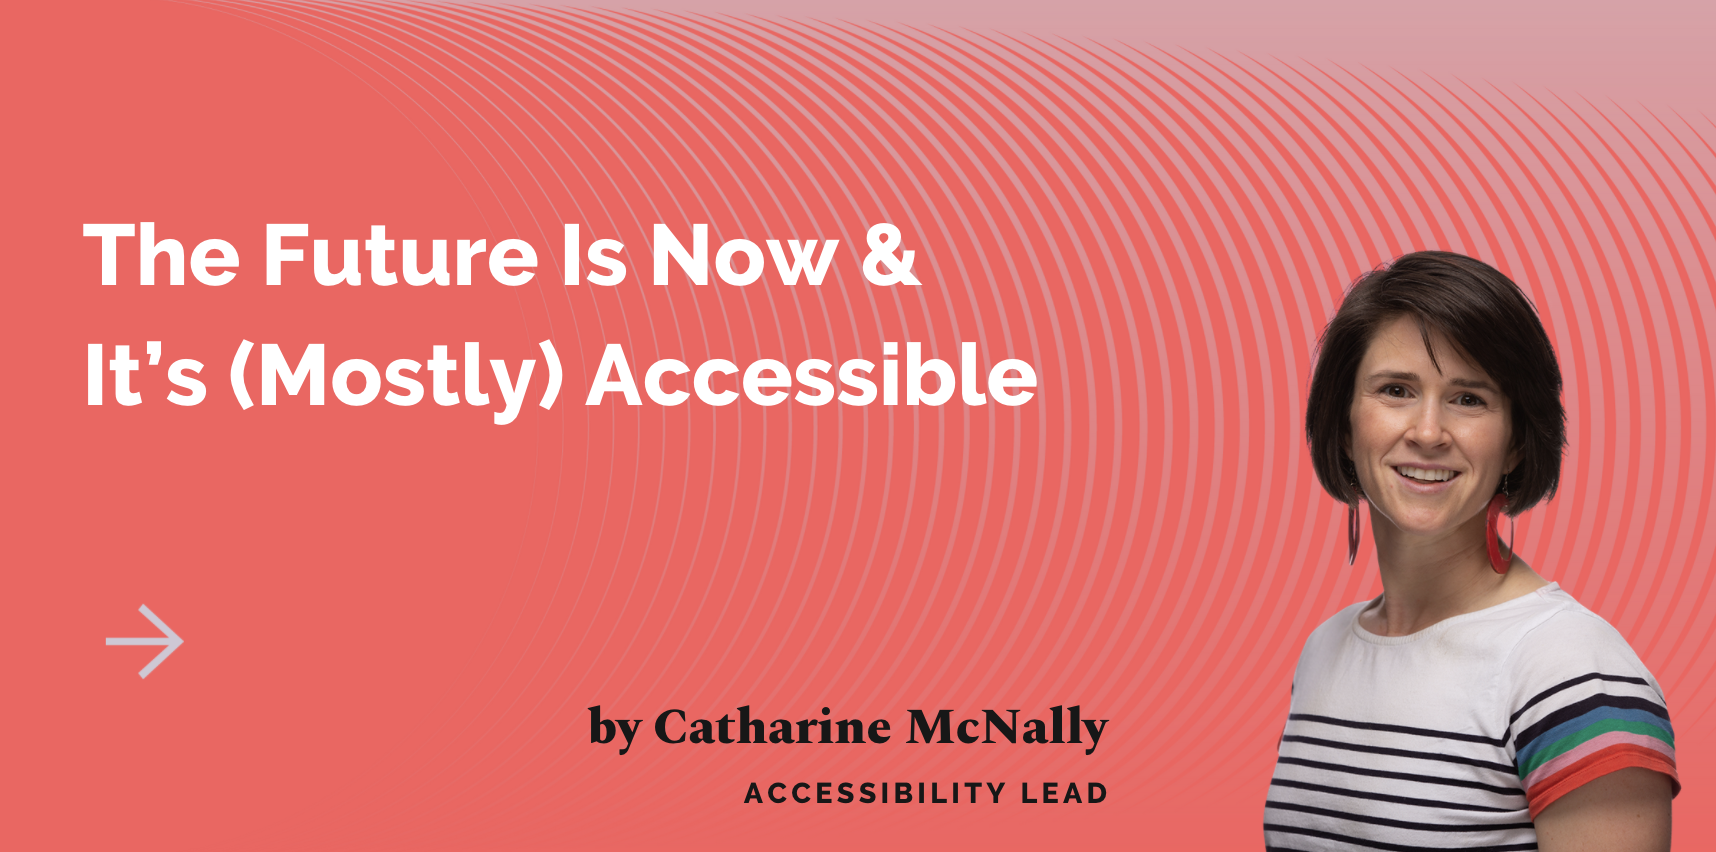 The Future Is Now & Its Mostly Accessible Blog Post